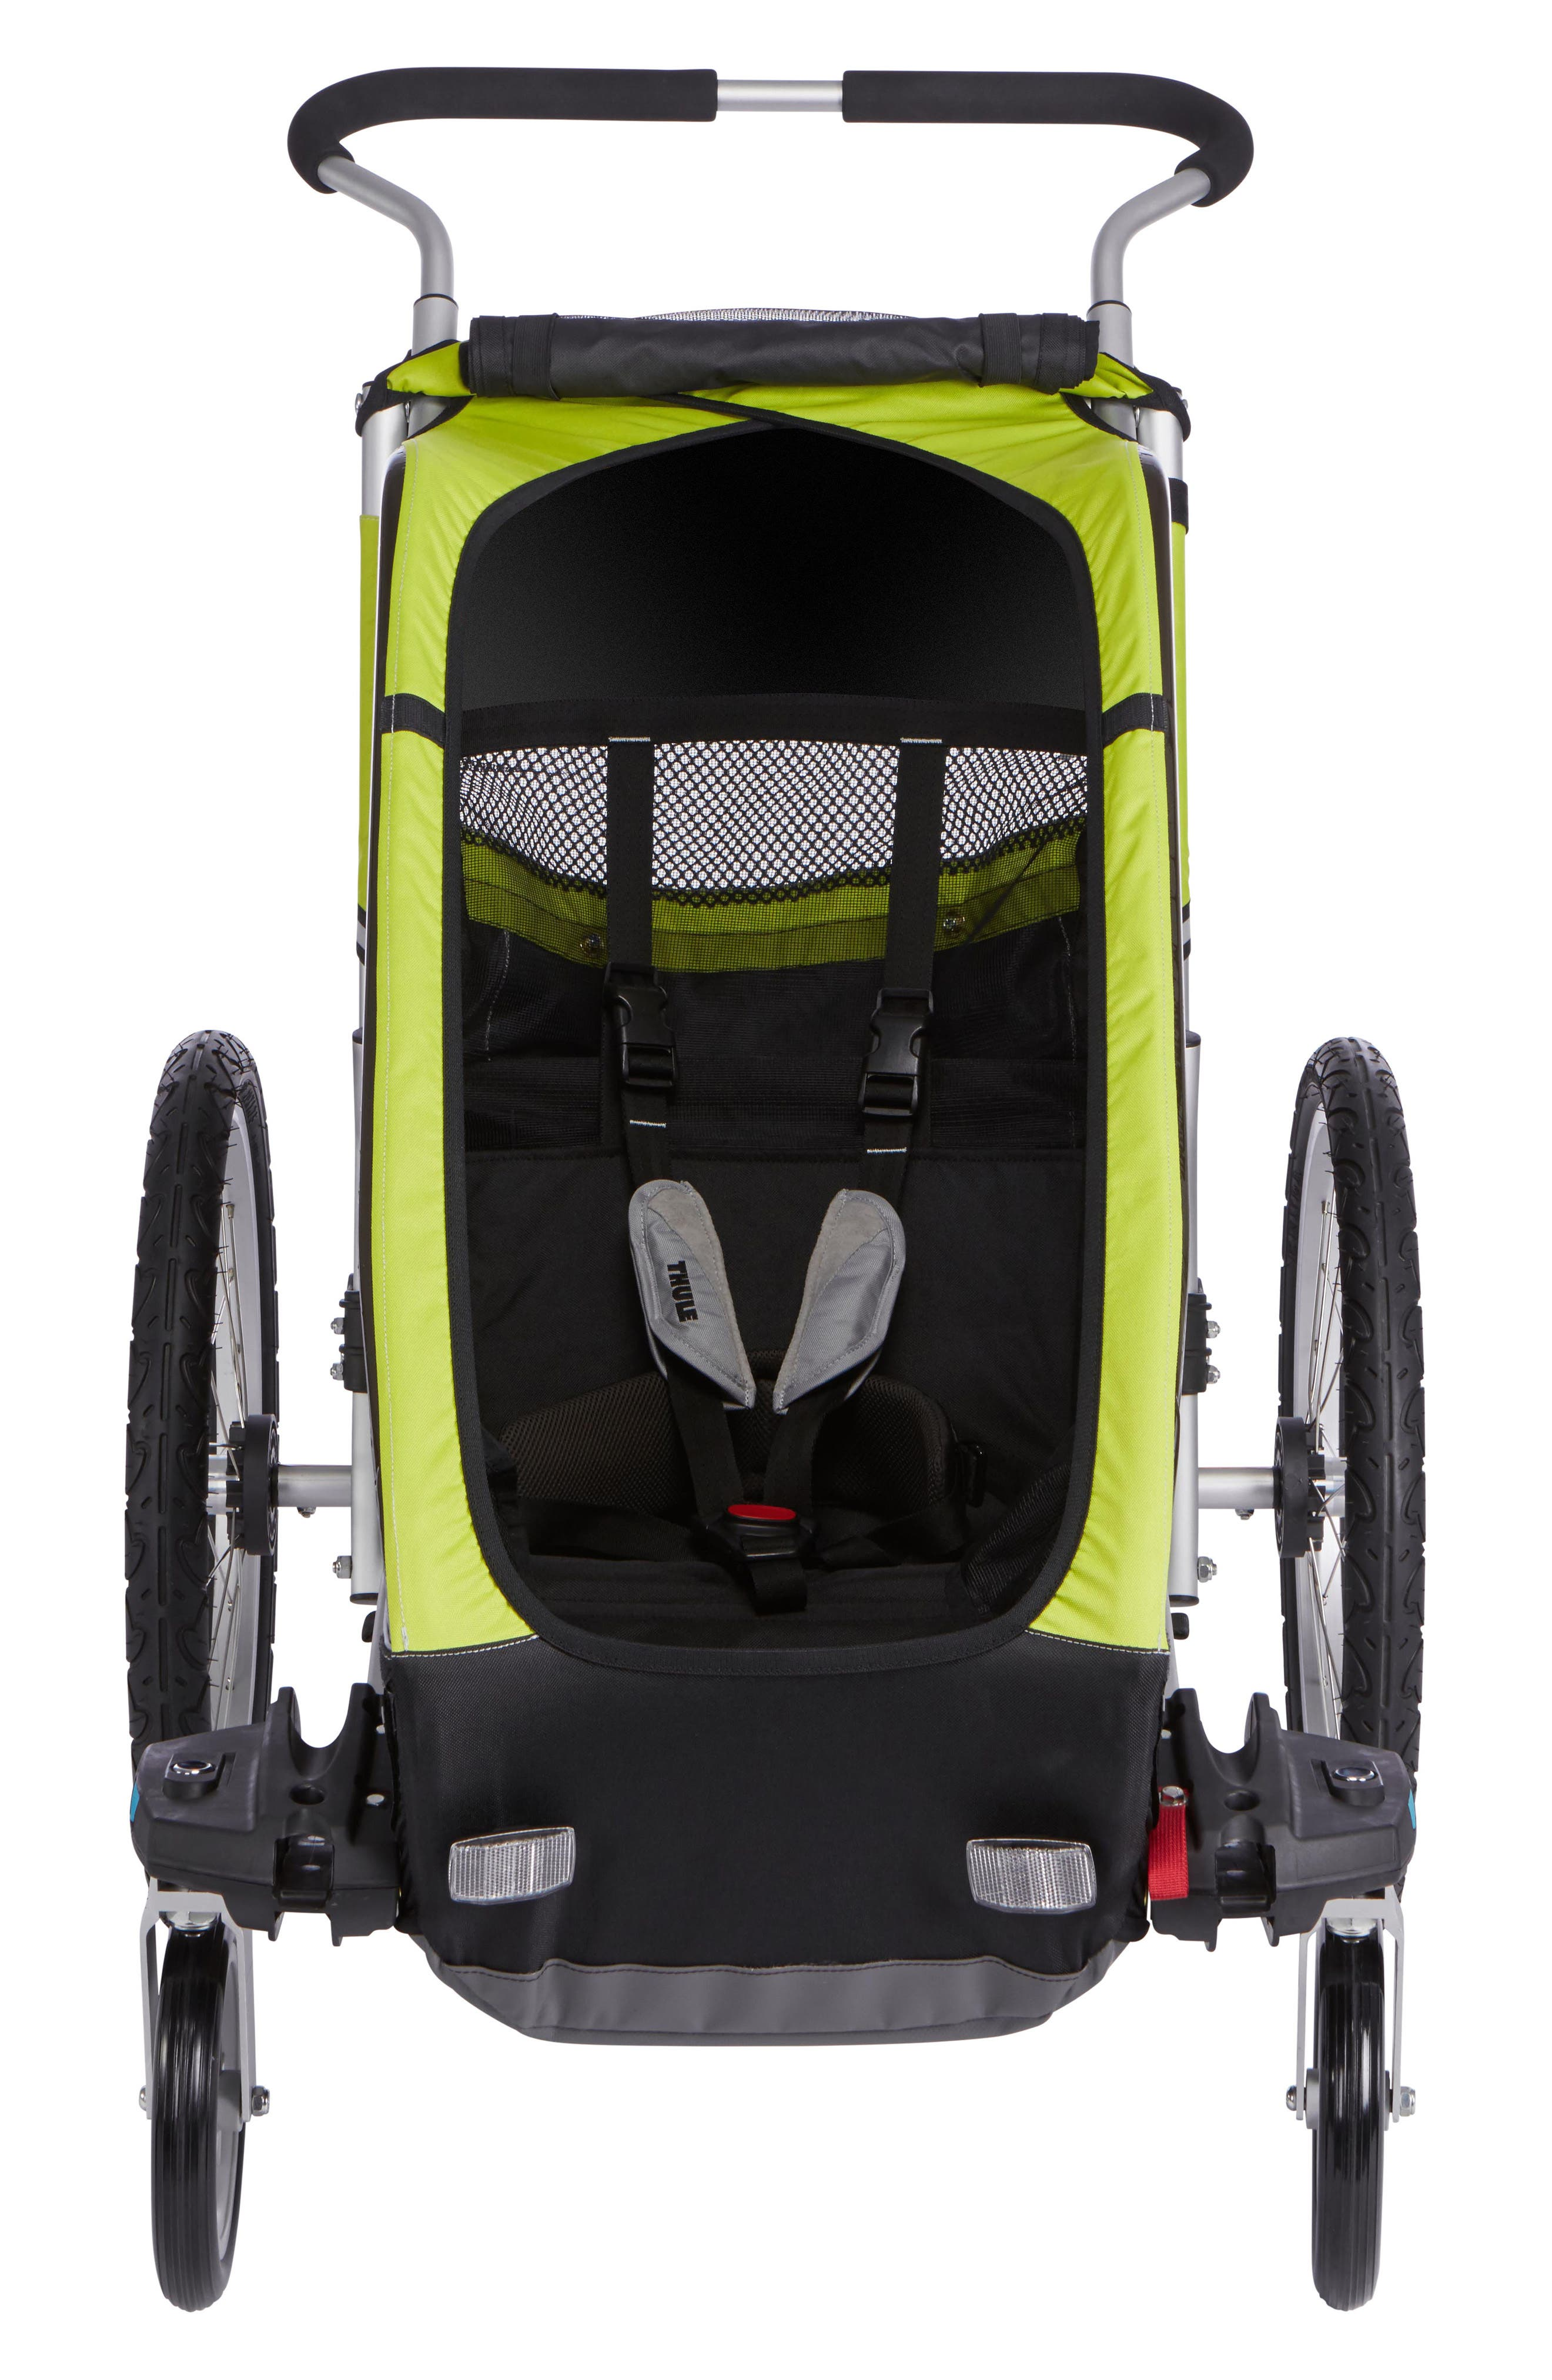 Chariot Cheetah XT 2 Multisport Cycle Trailer/Stroller,                         Main,                         color, CHARTREUSE